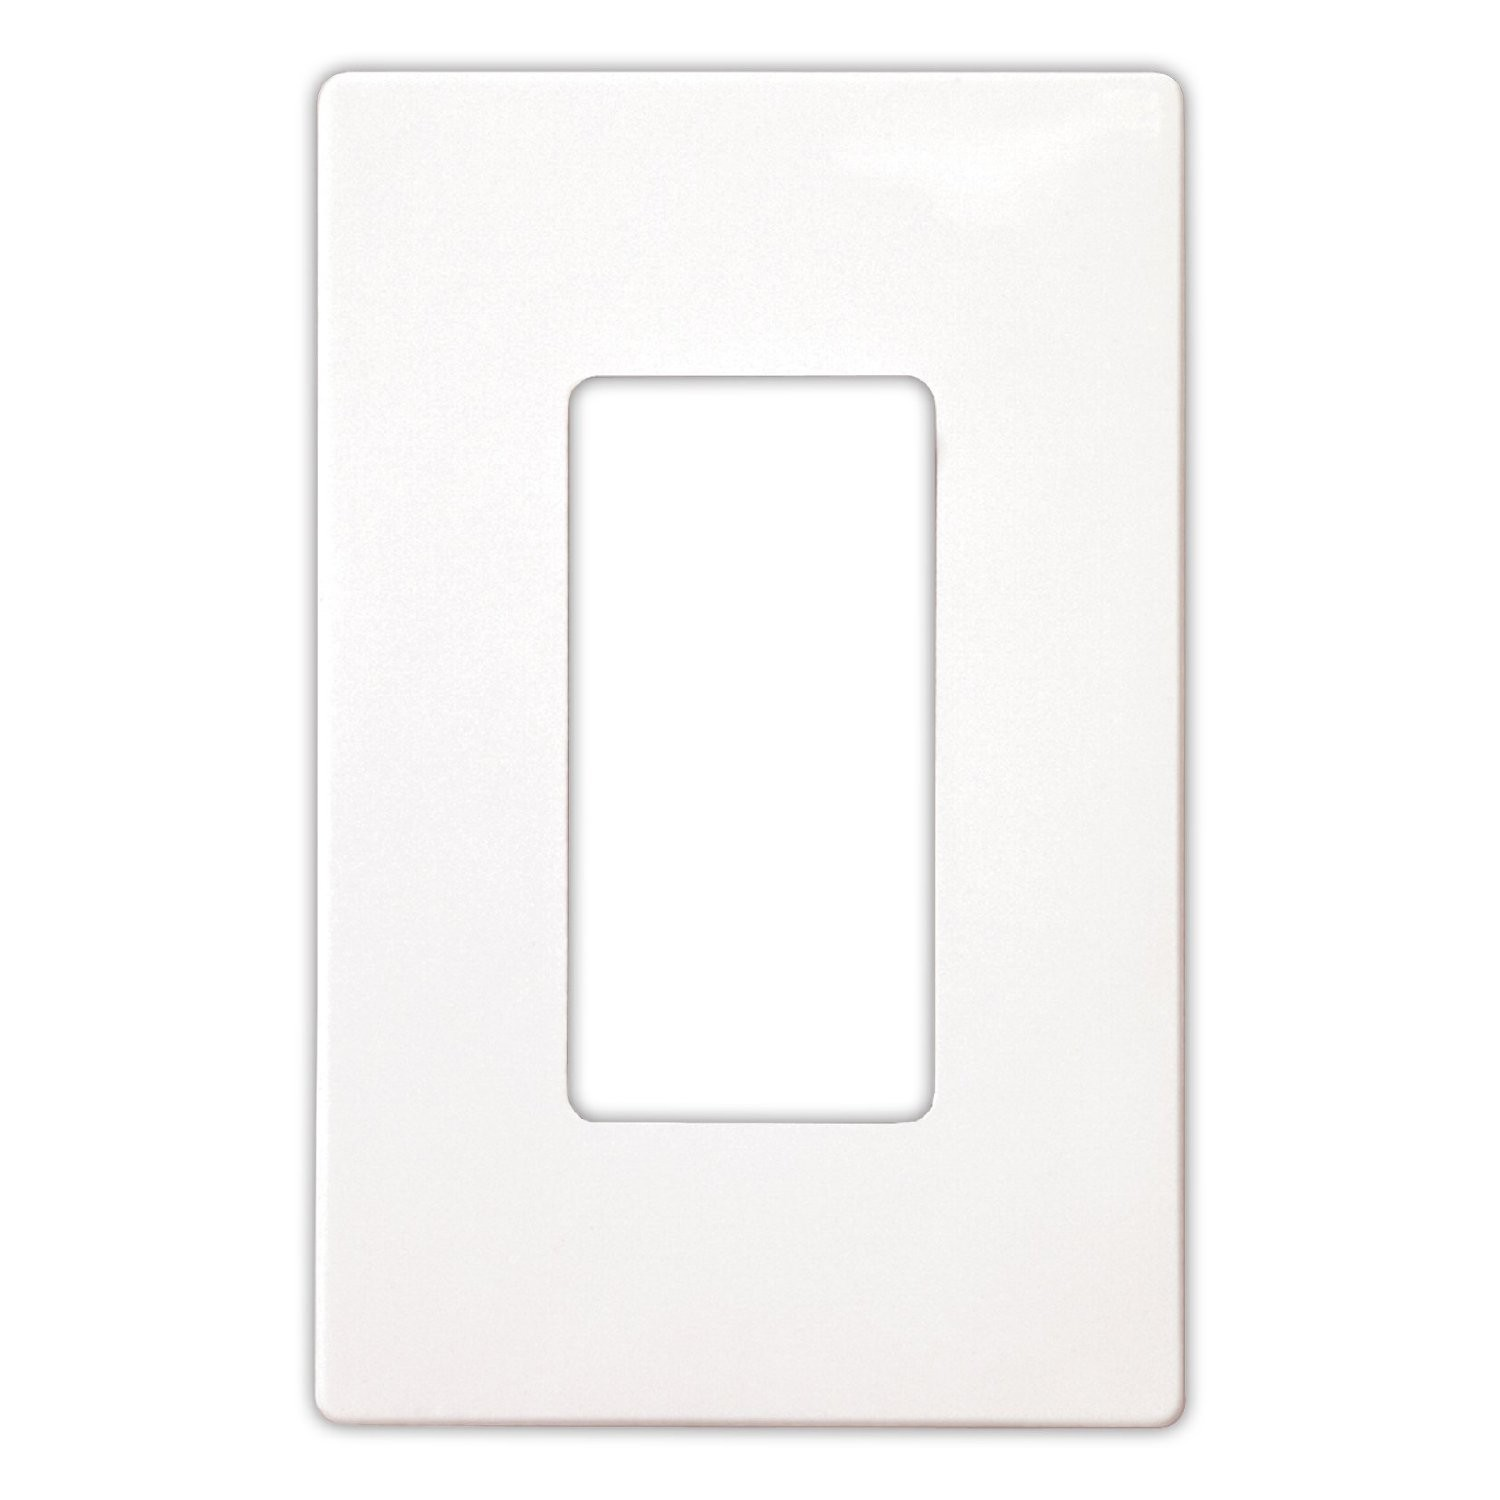 Rocker Switch Plate Cool Cooper Wiring Pjs26W Wall Plate Decorator Midsized Screwless Review